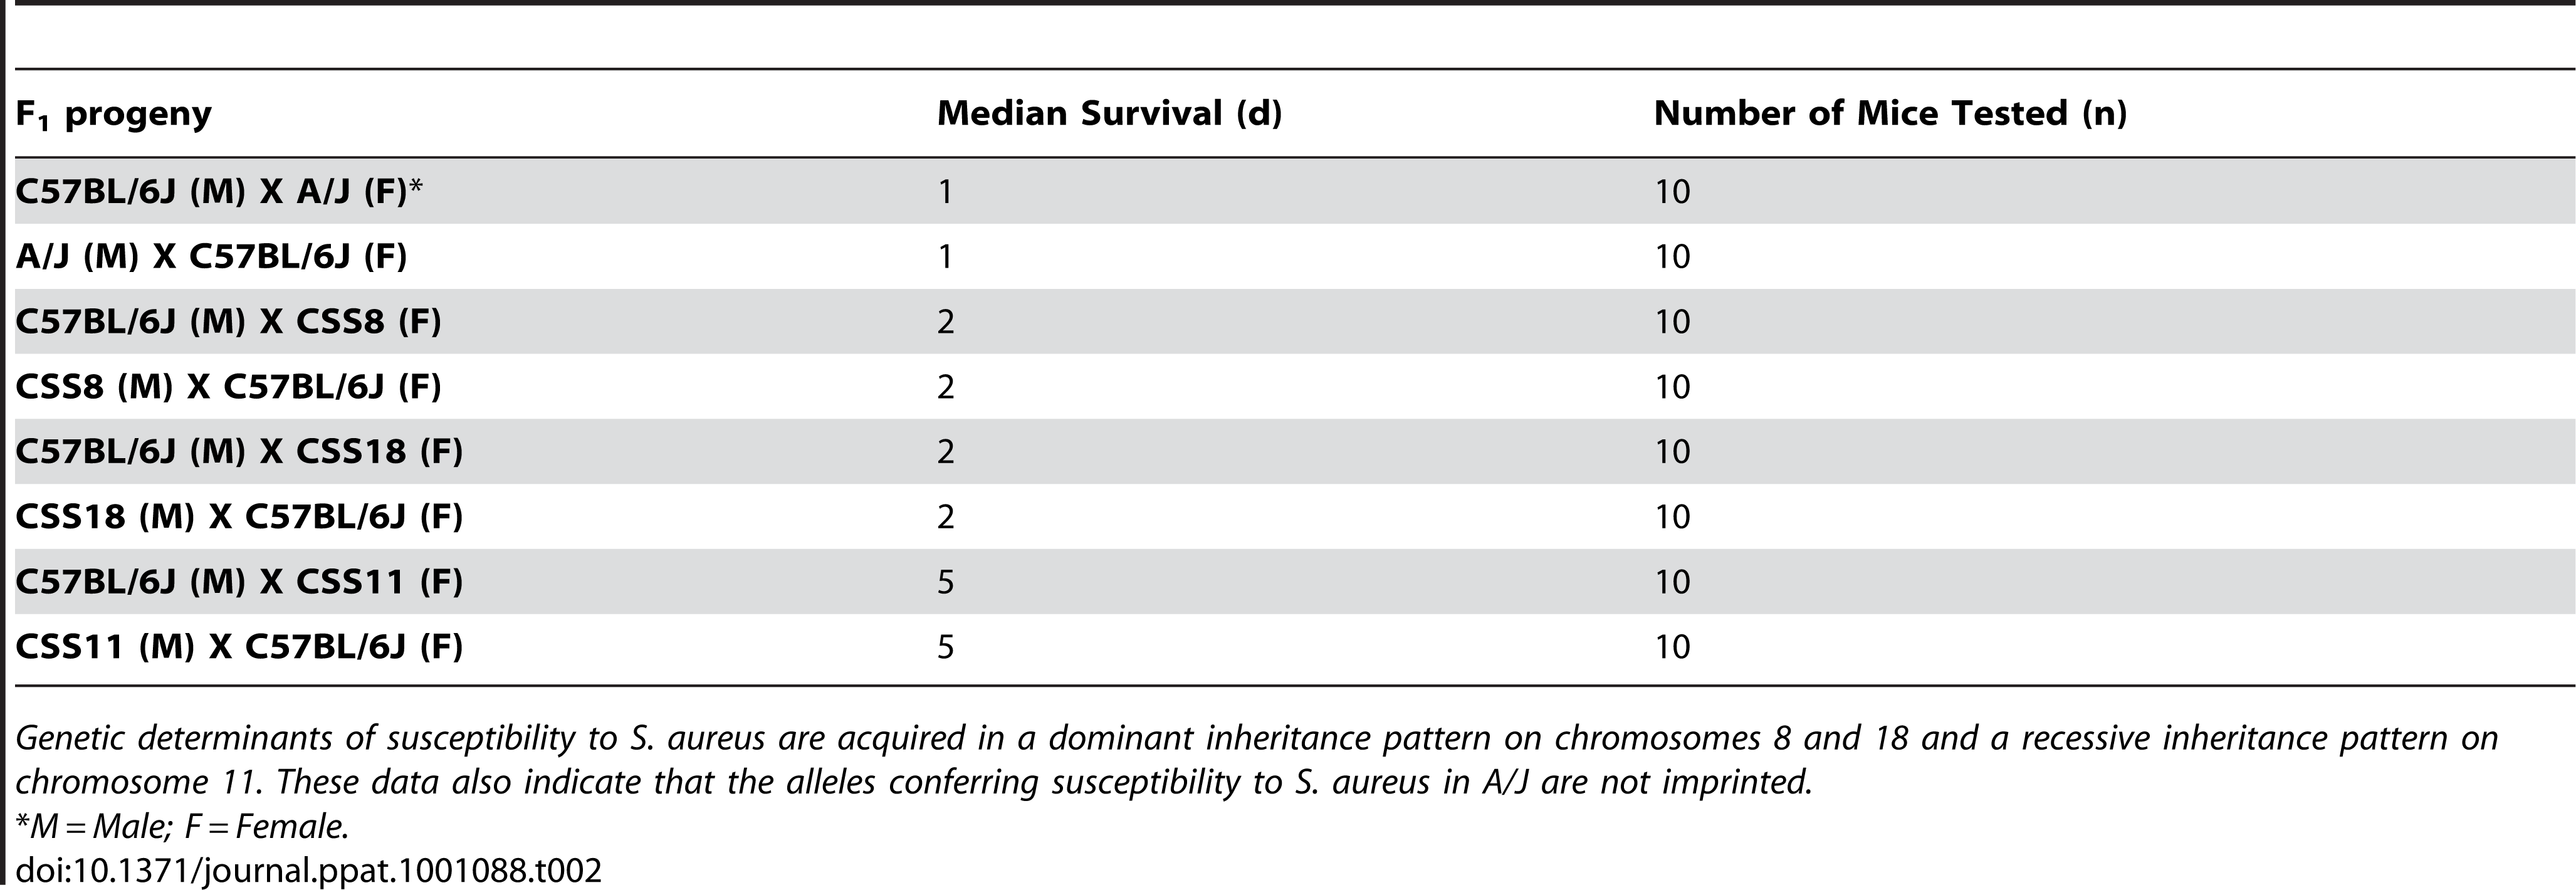 Median survivals of F<sub>1</sub> progeny of Chromosomal Substitution Strains 8, 11, and 18.